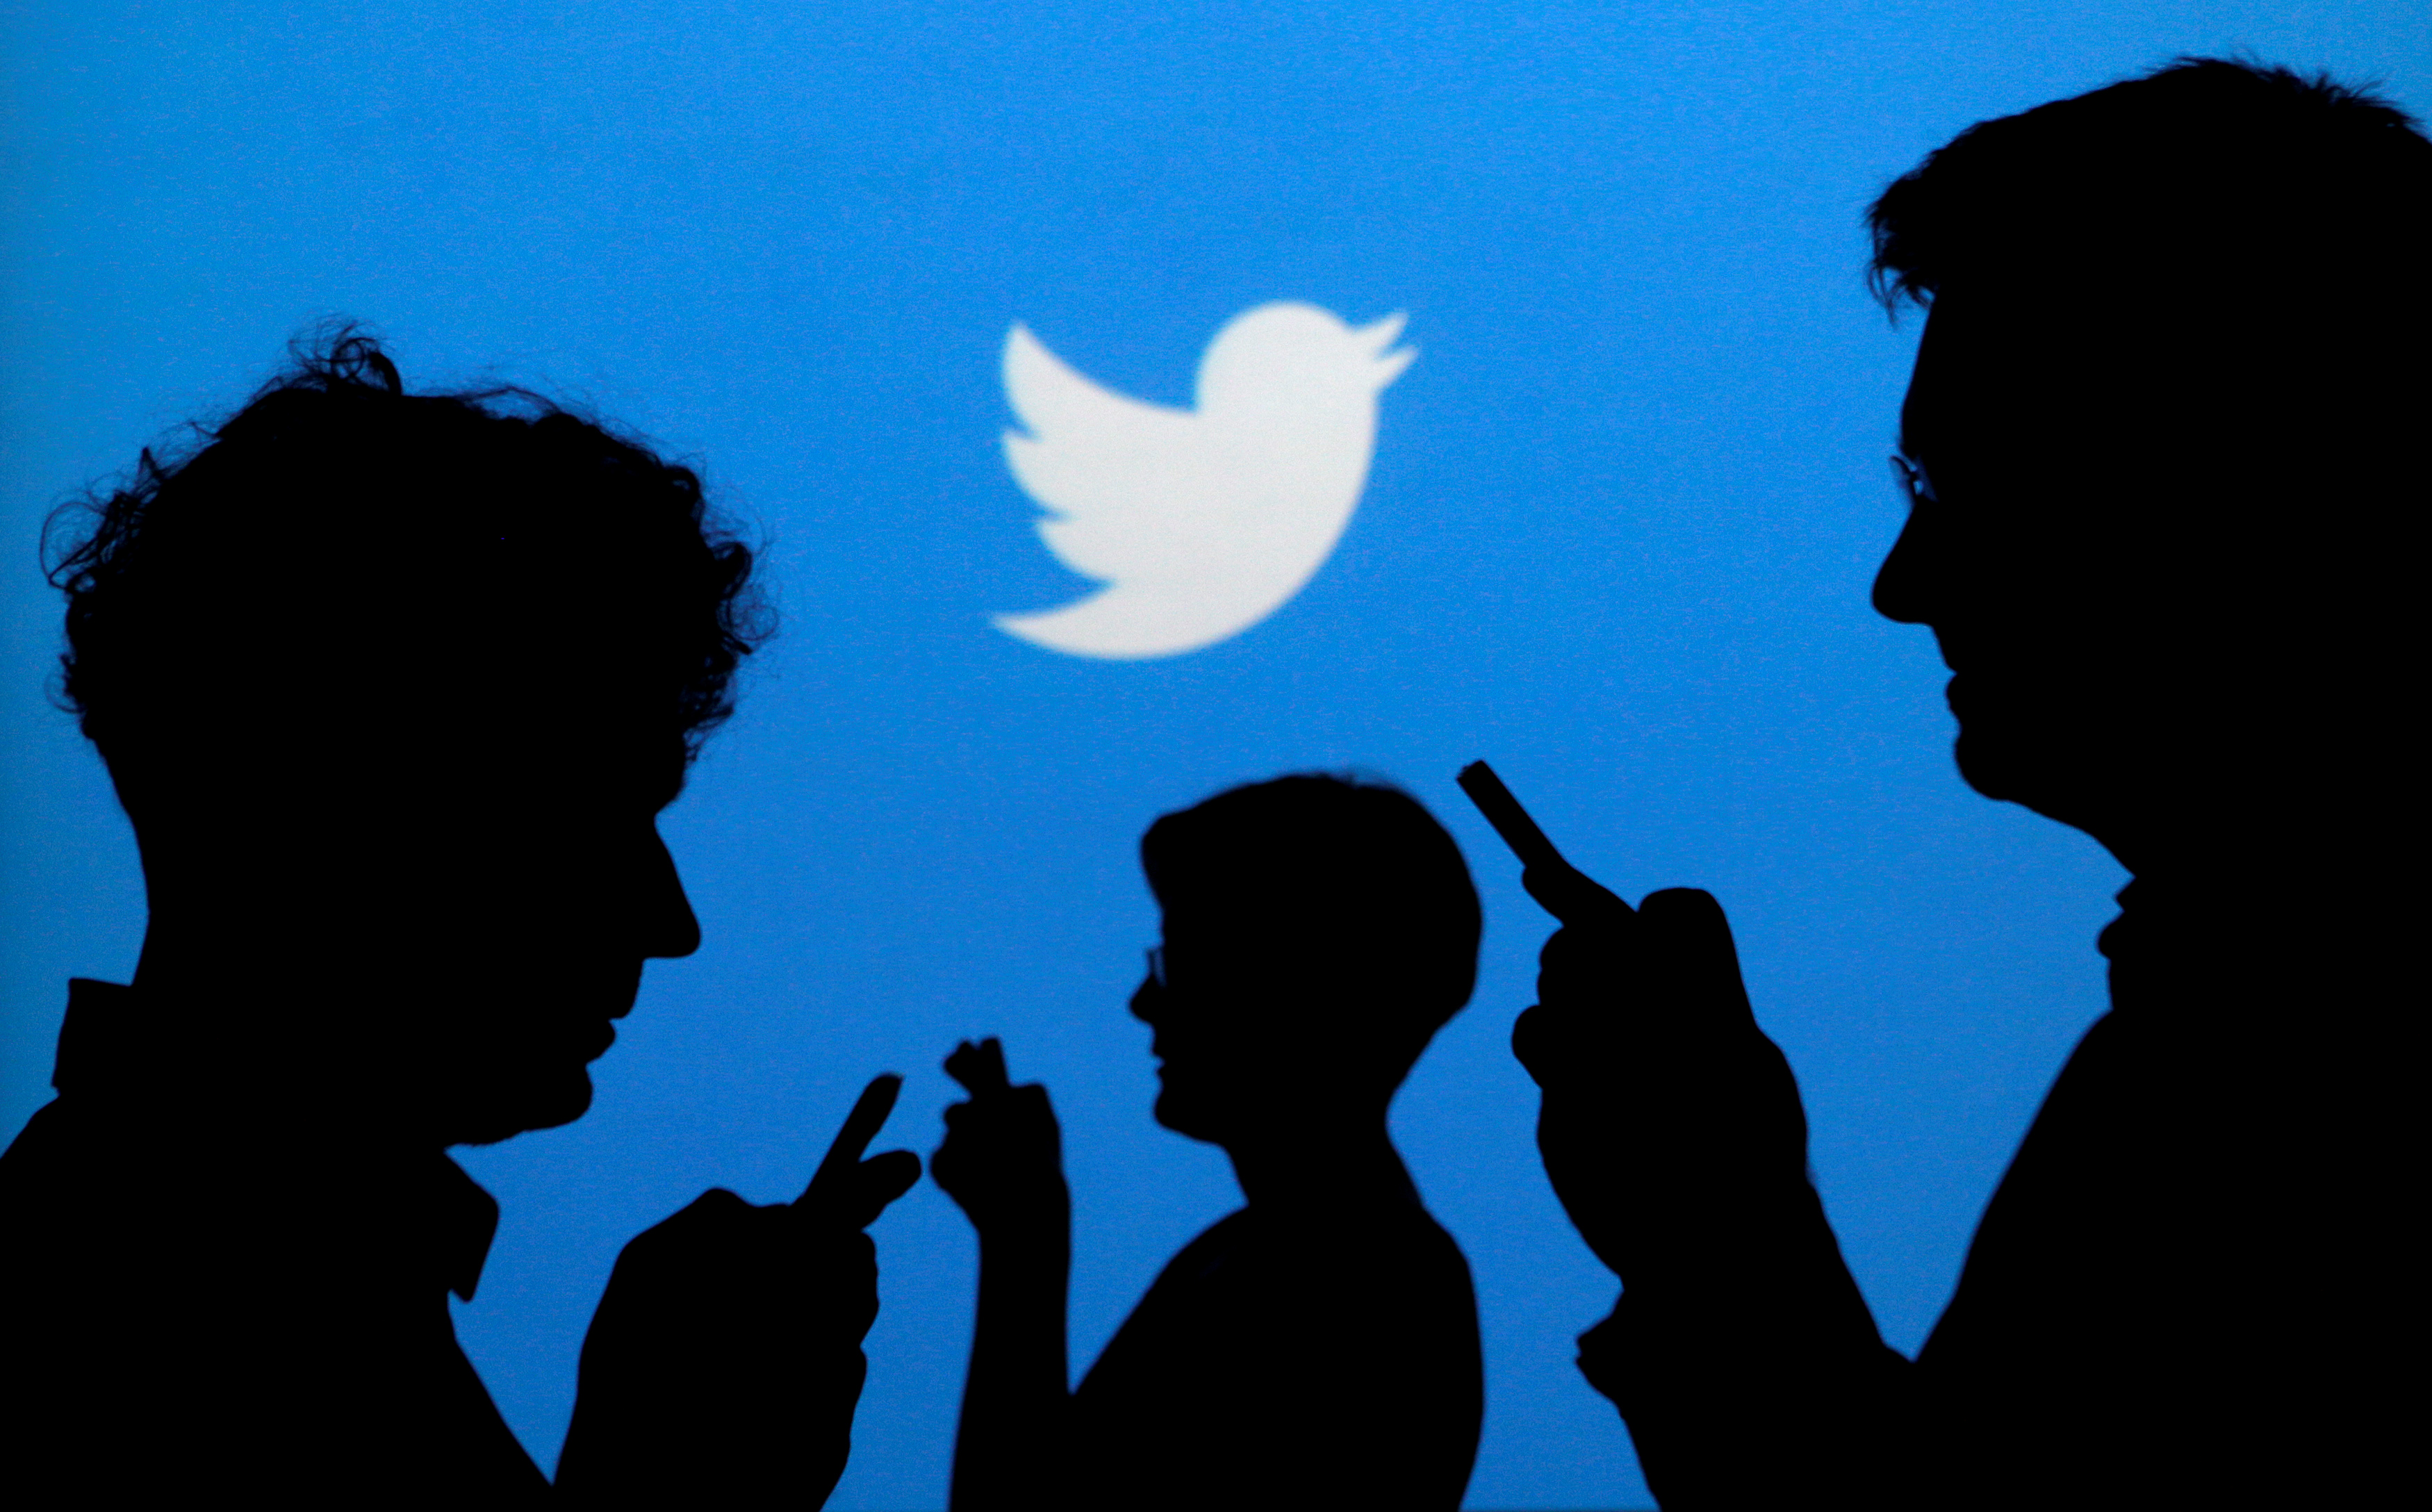 Smartphone users are silhouetted against a backdrop with the Twitter logo in Warsaw, Poland on Sept. 27, 2013.